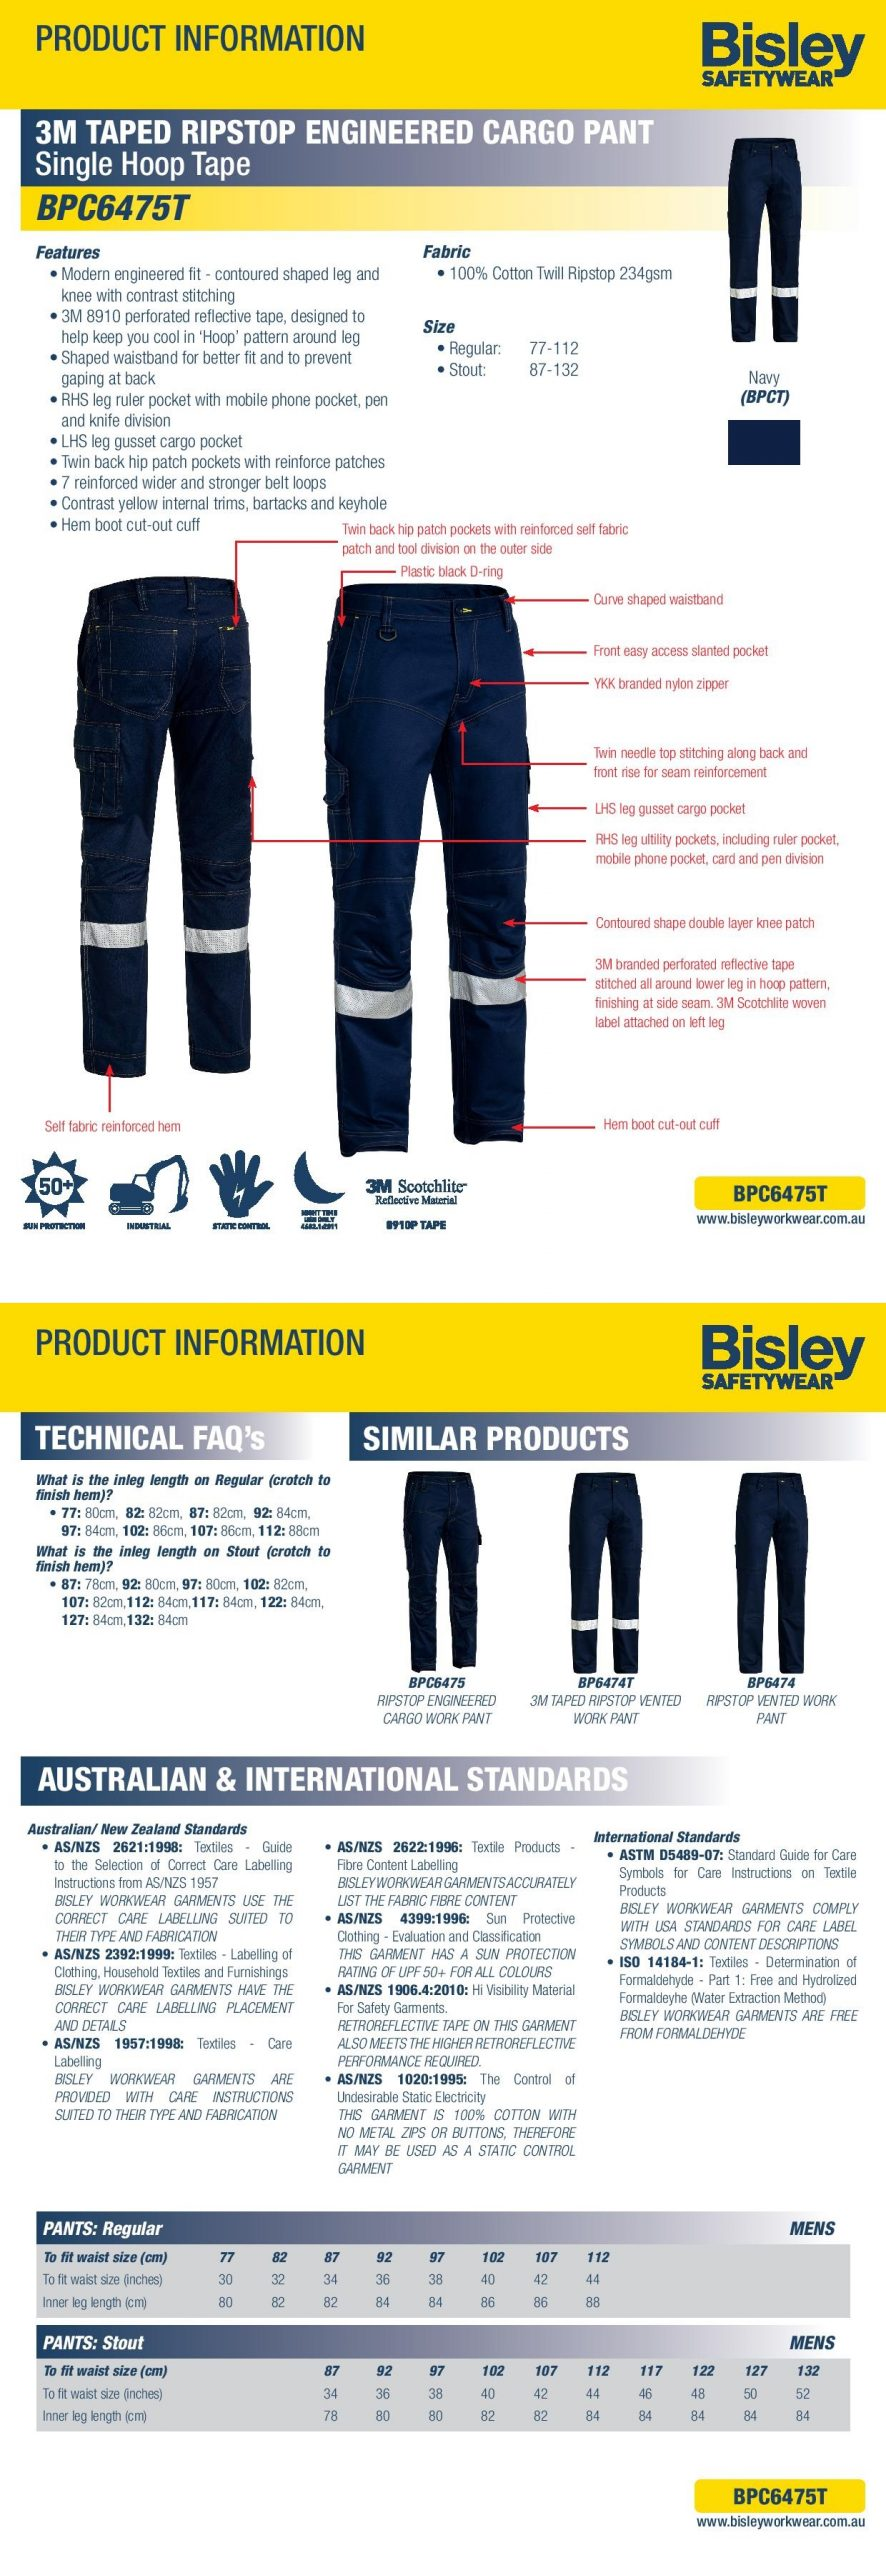 Product Specification